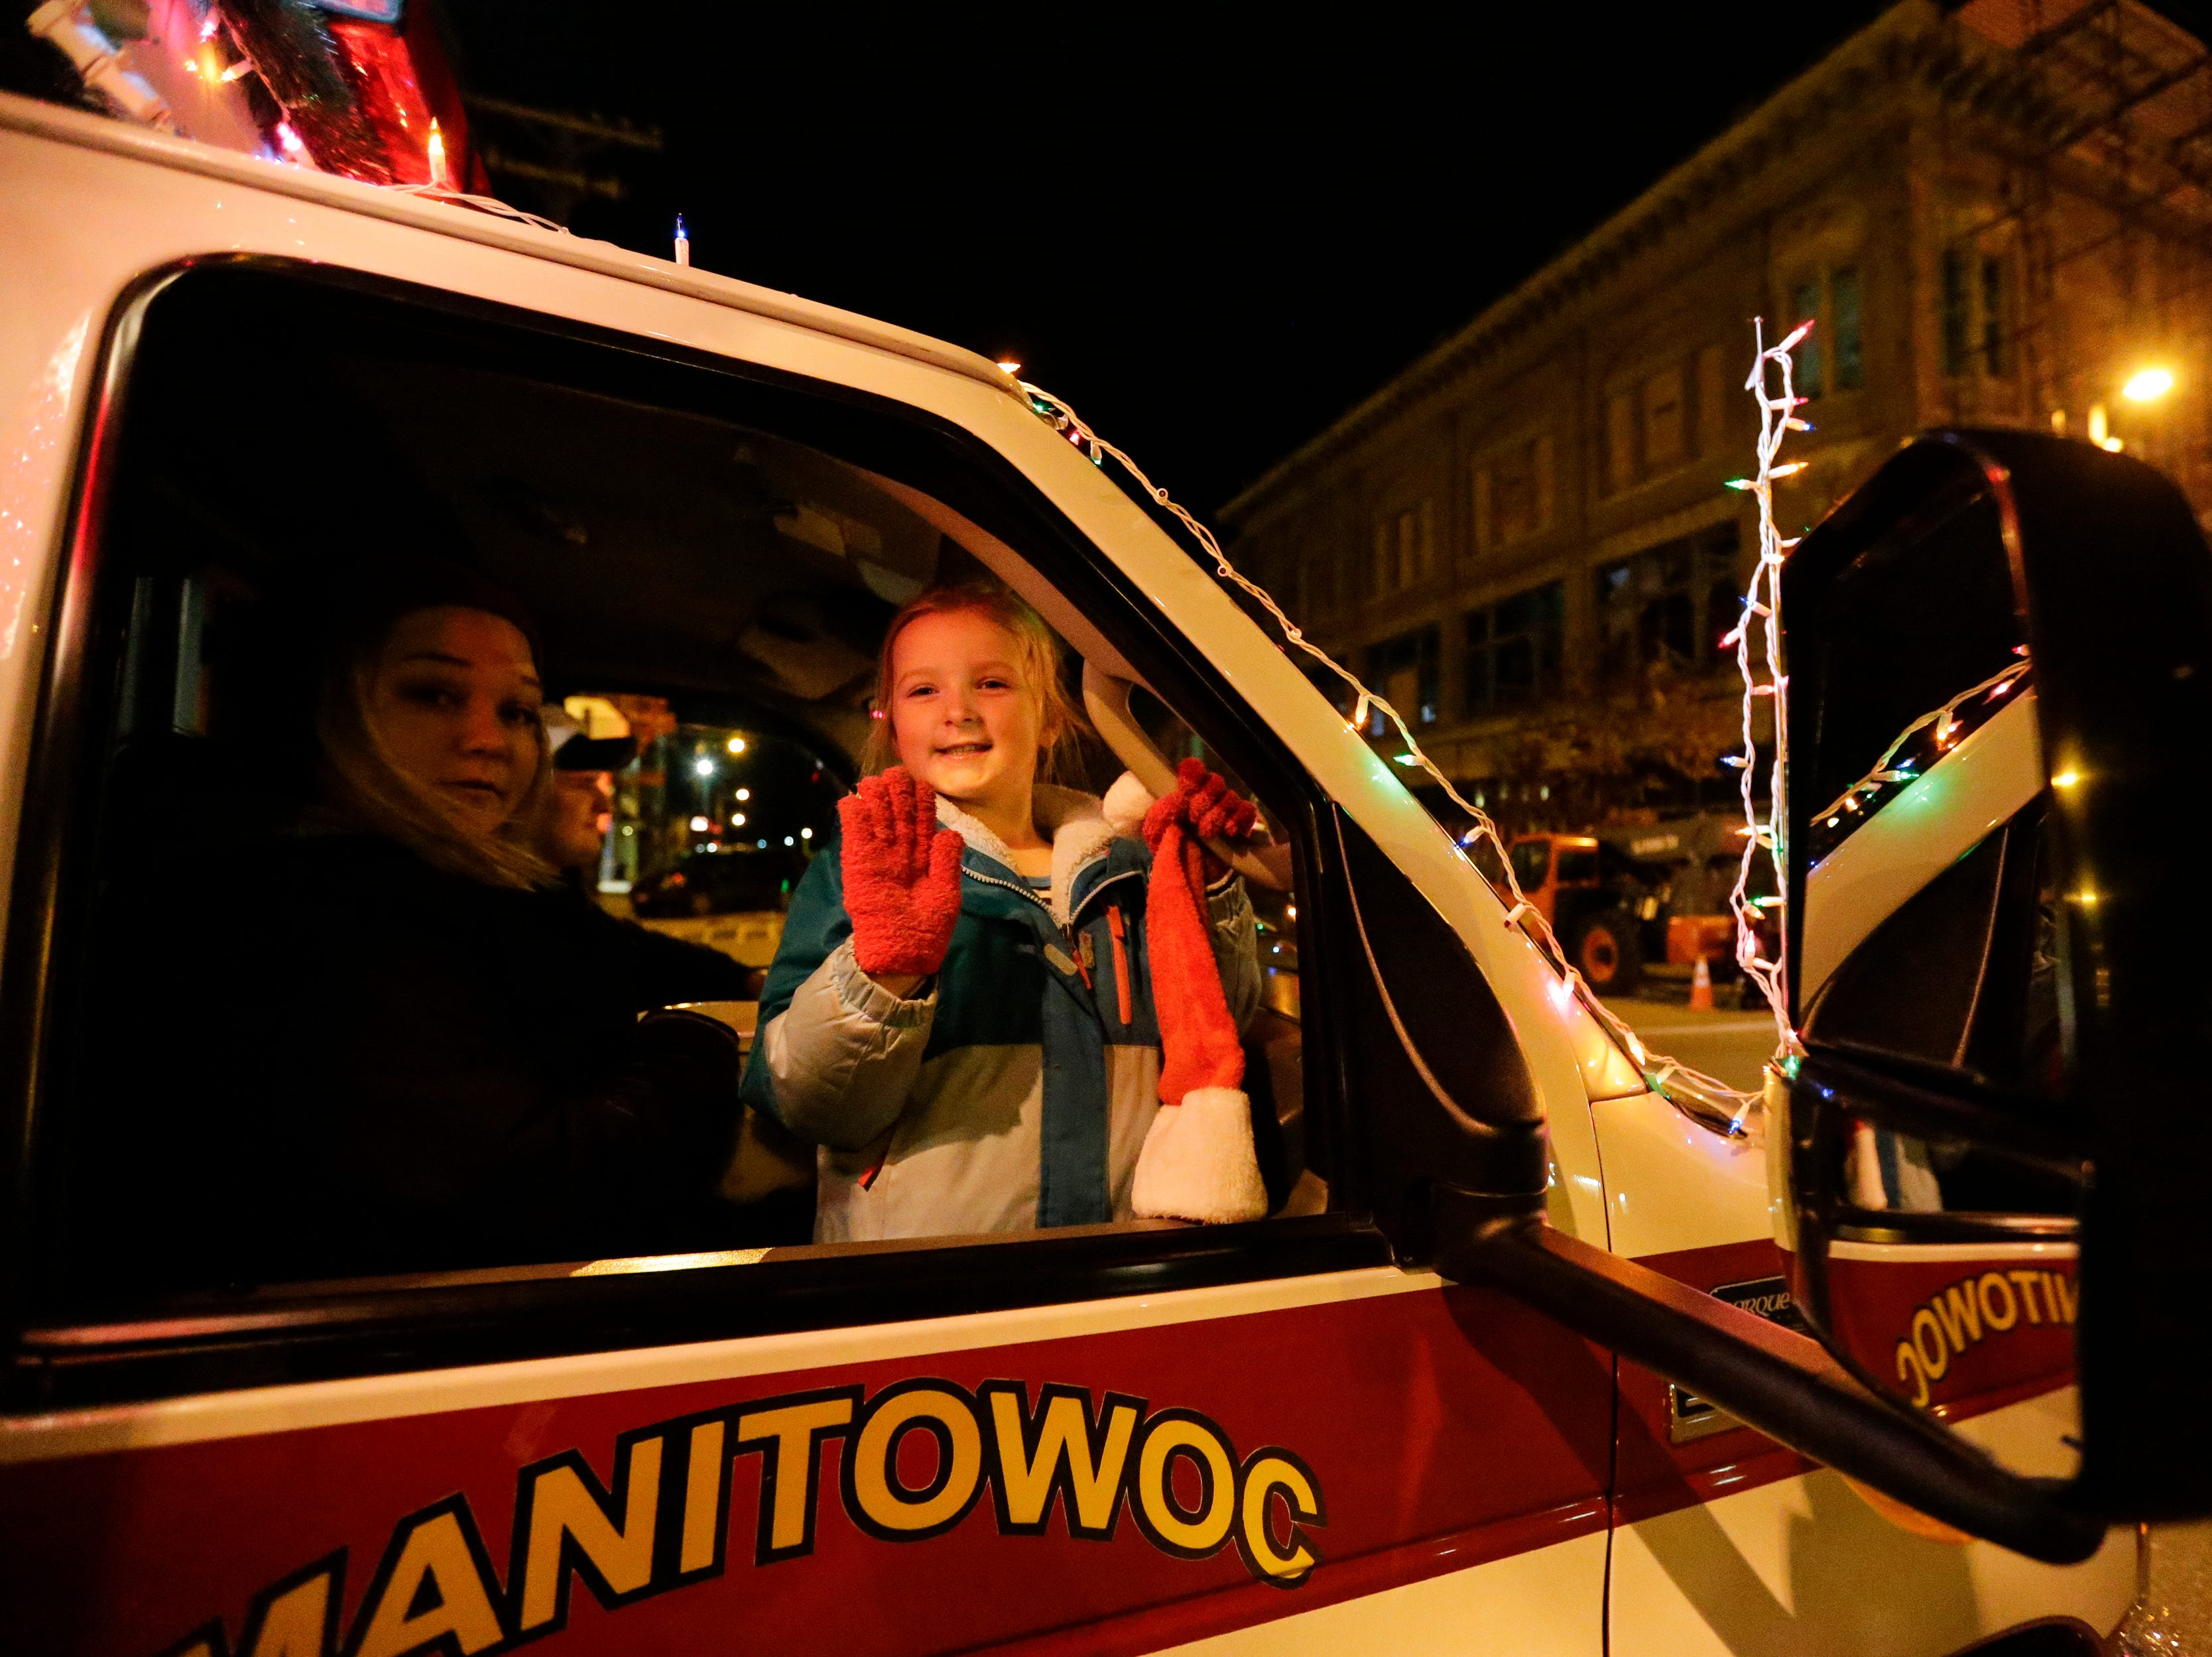 """A little girl waves from the Manitowoc ambulance during the 30th Annual Lakeshore Holiday Parade Wednesday, November 21, 2018, in Manitowoc, Wis. This year's theme was """"Christmas Through the Decades."""" Joshua Clark/USA TODAY NETWORK-Wisconsin"""